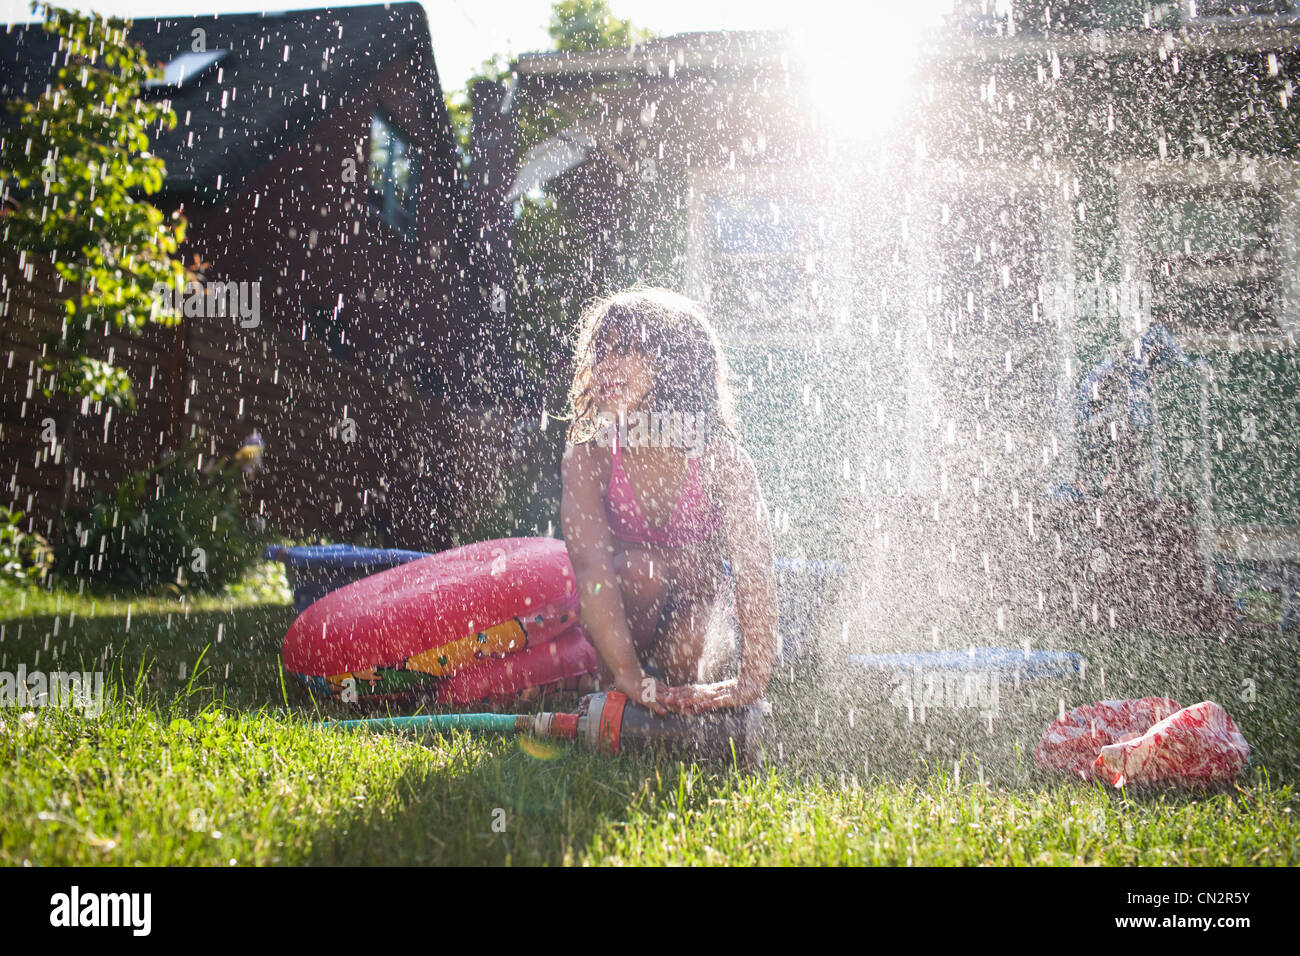 Young girl playing in garden sprinkler - Stock Image